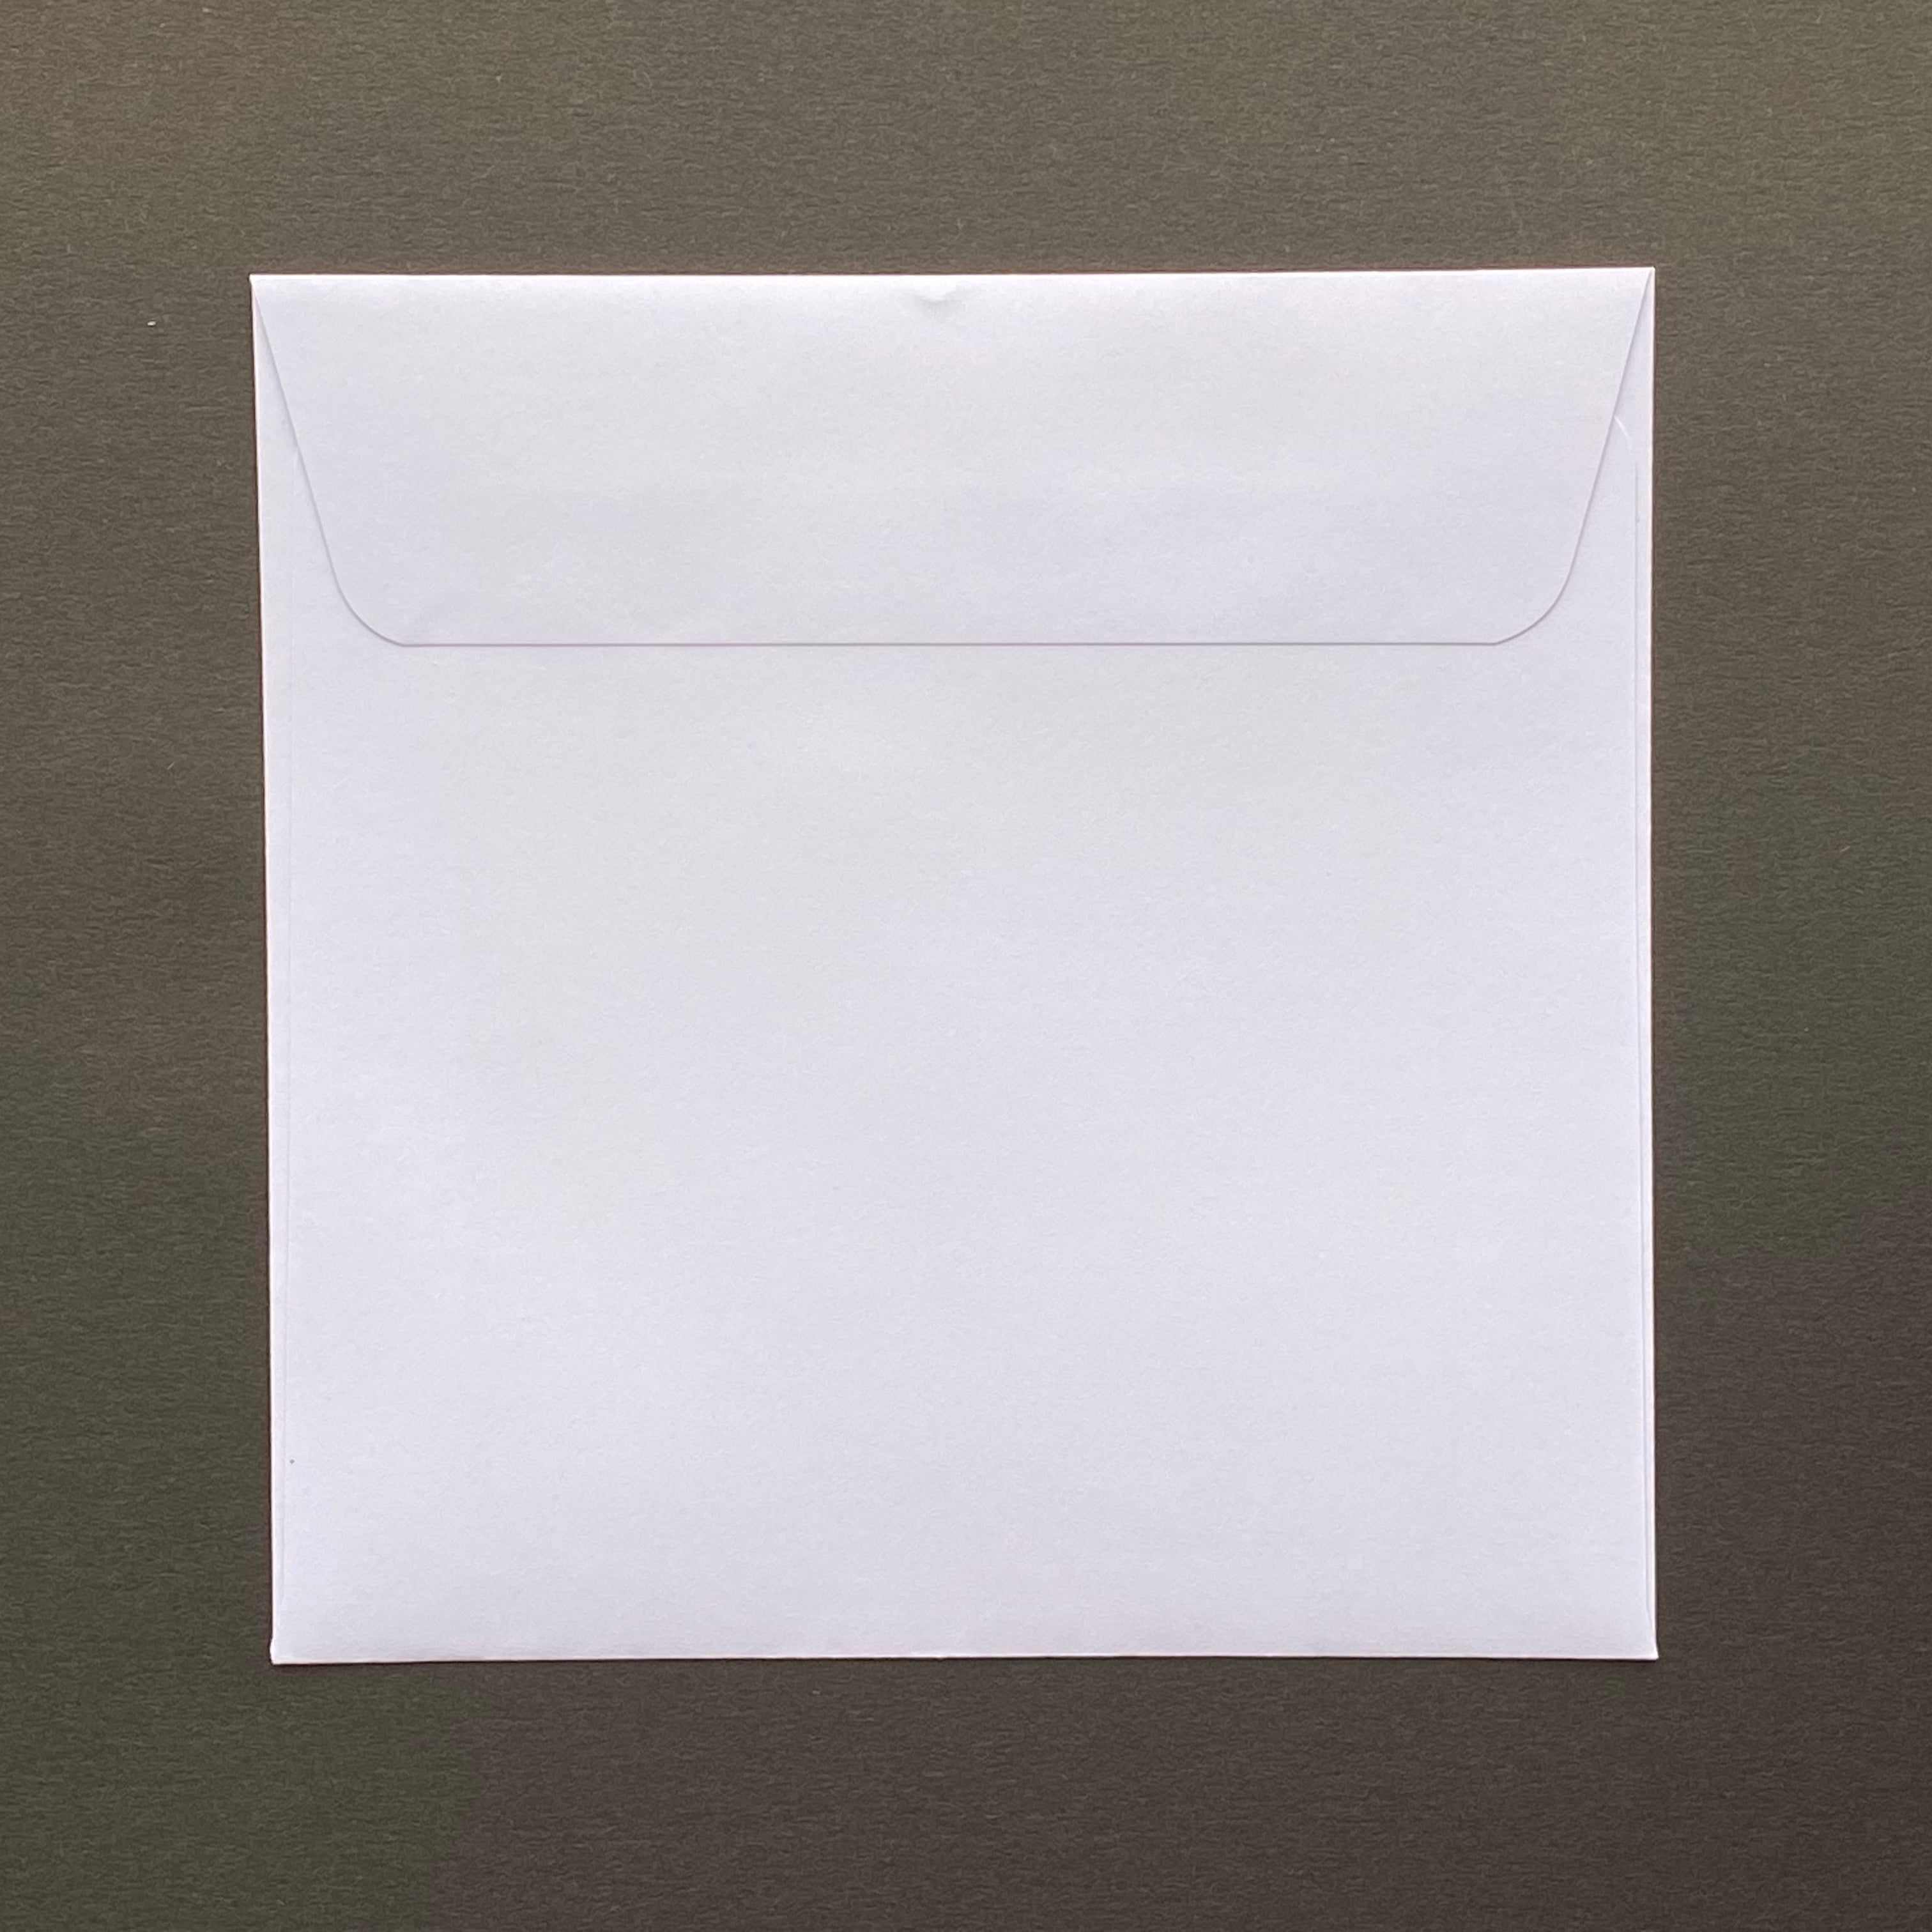 155mm square white envelopes